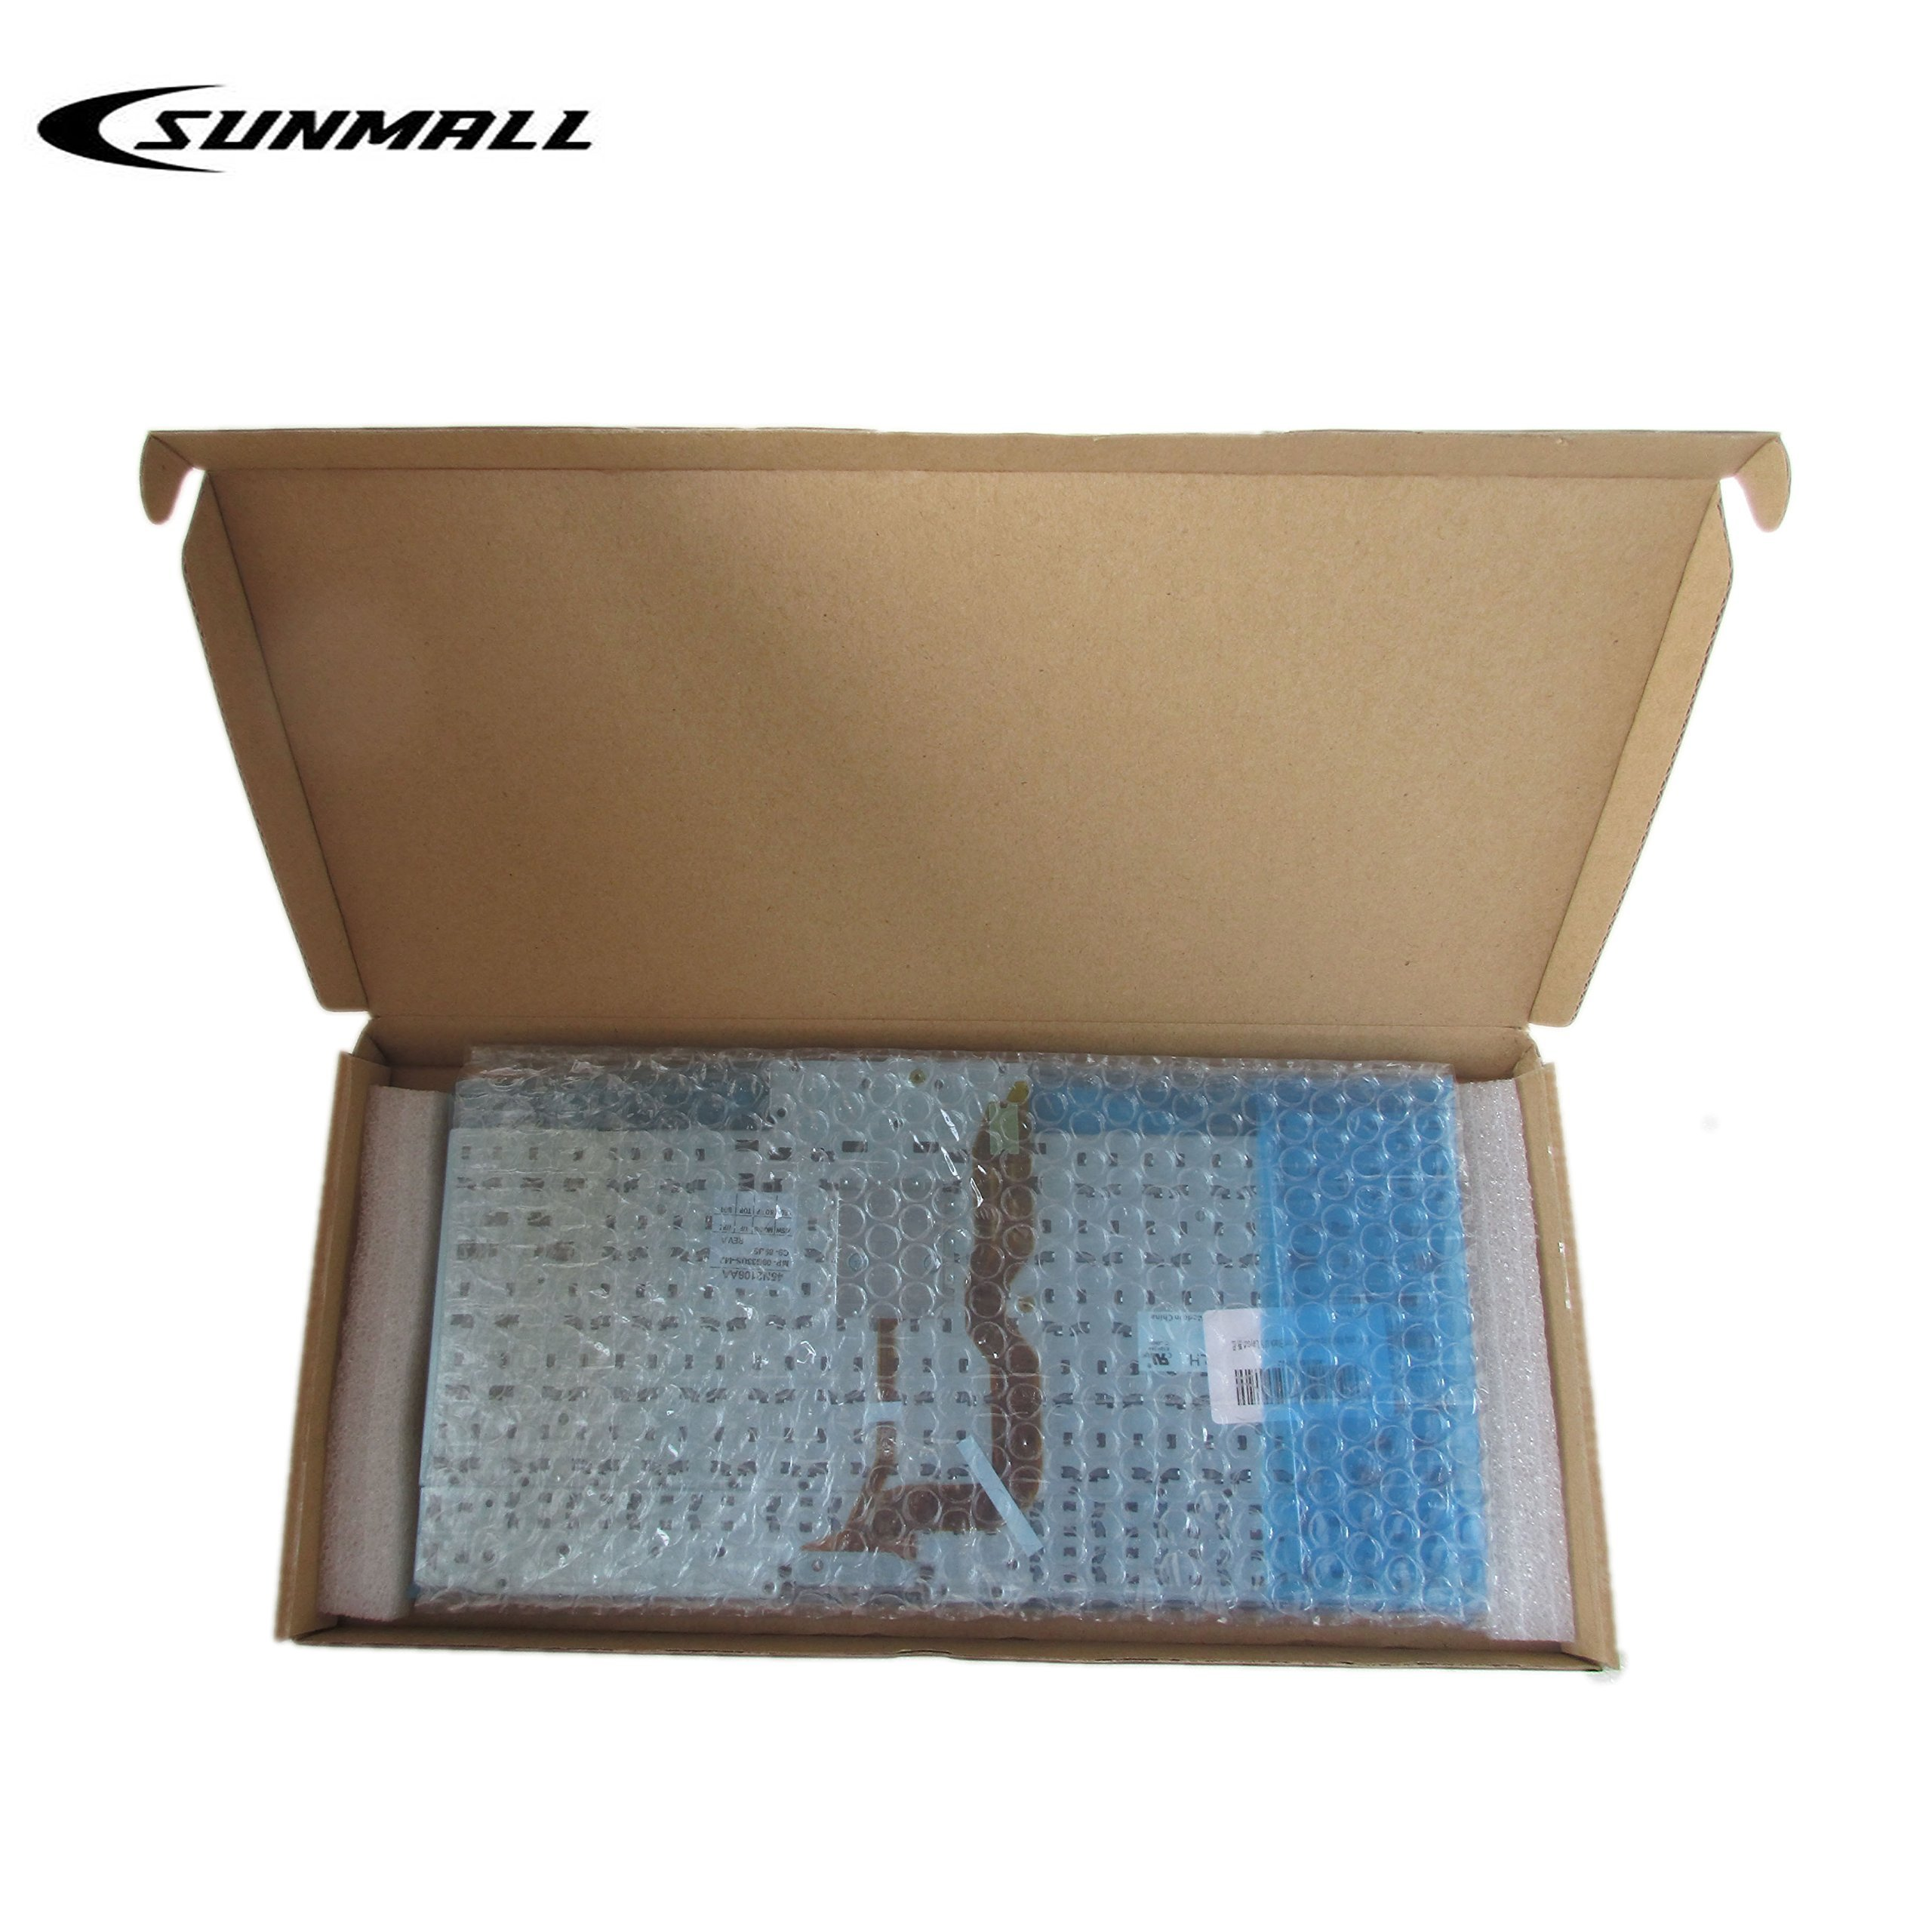 Sunmall New Laptop Keyboard With Pointer For Lenovo Thinkpad T400s T410 T420 T510 T520 W510 X220 T410s T410i T410si T420i Yu Thch